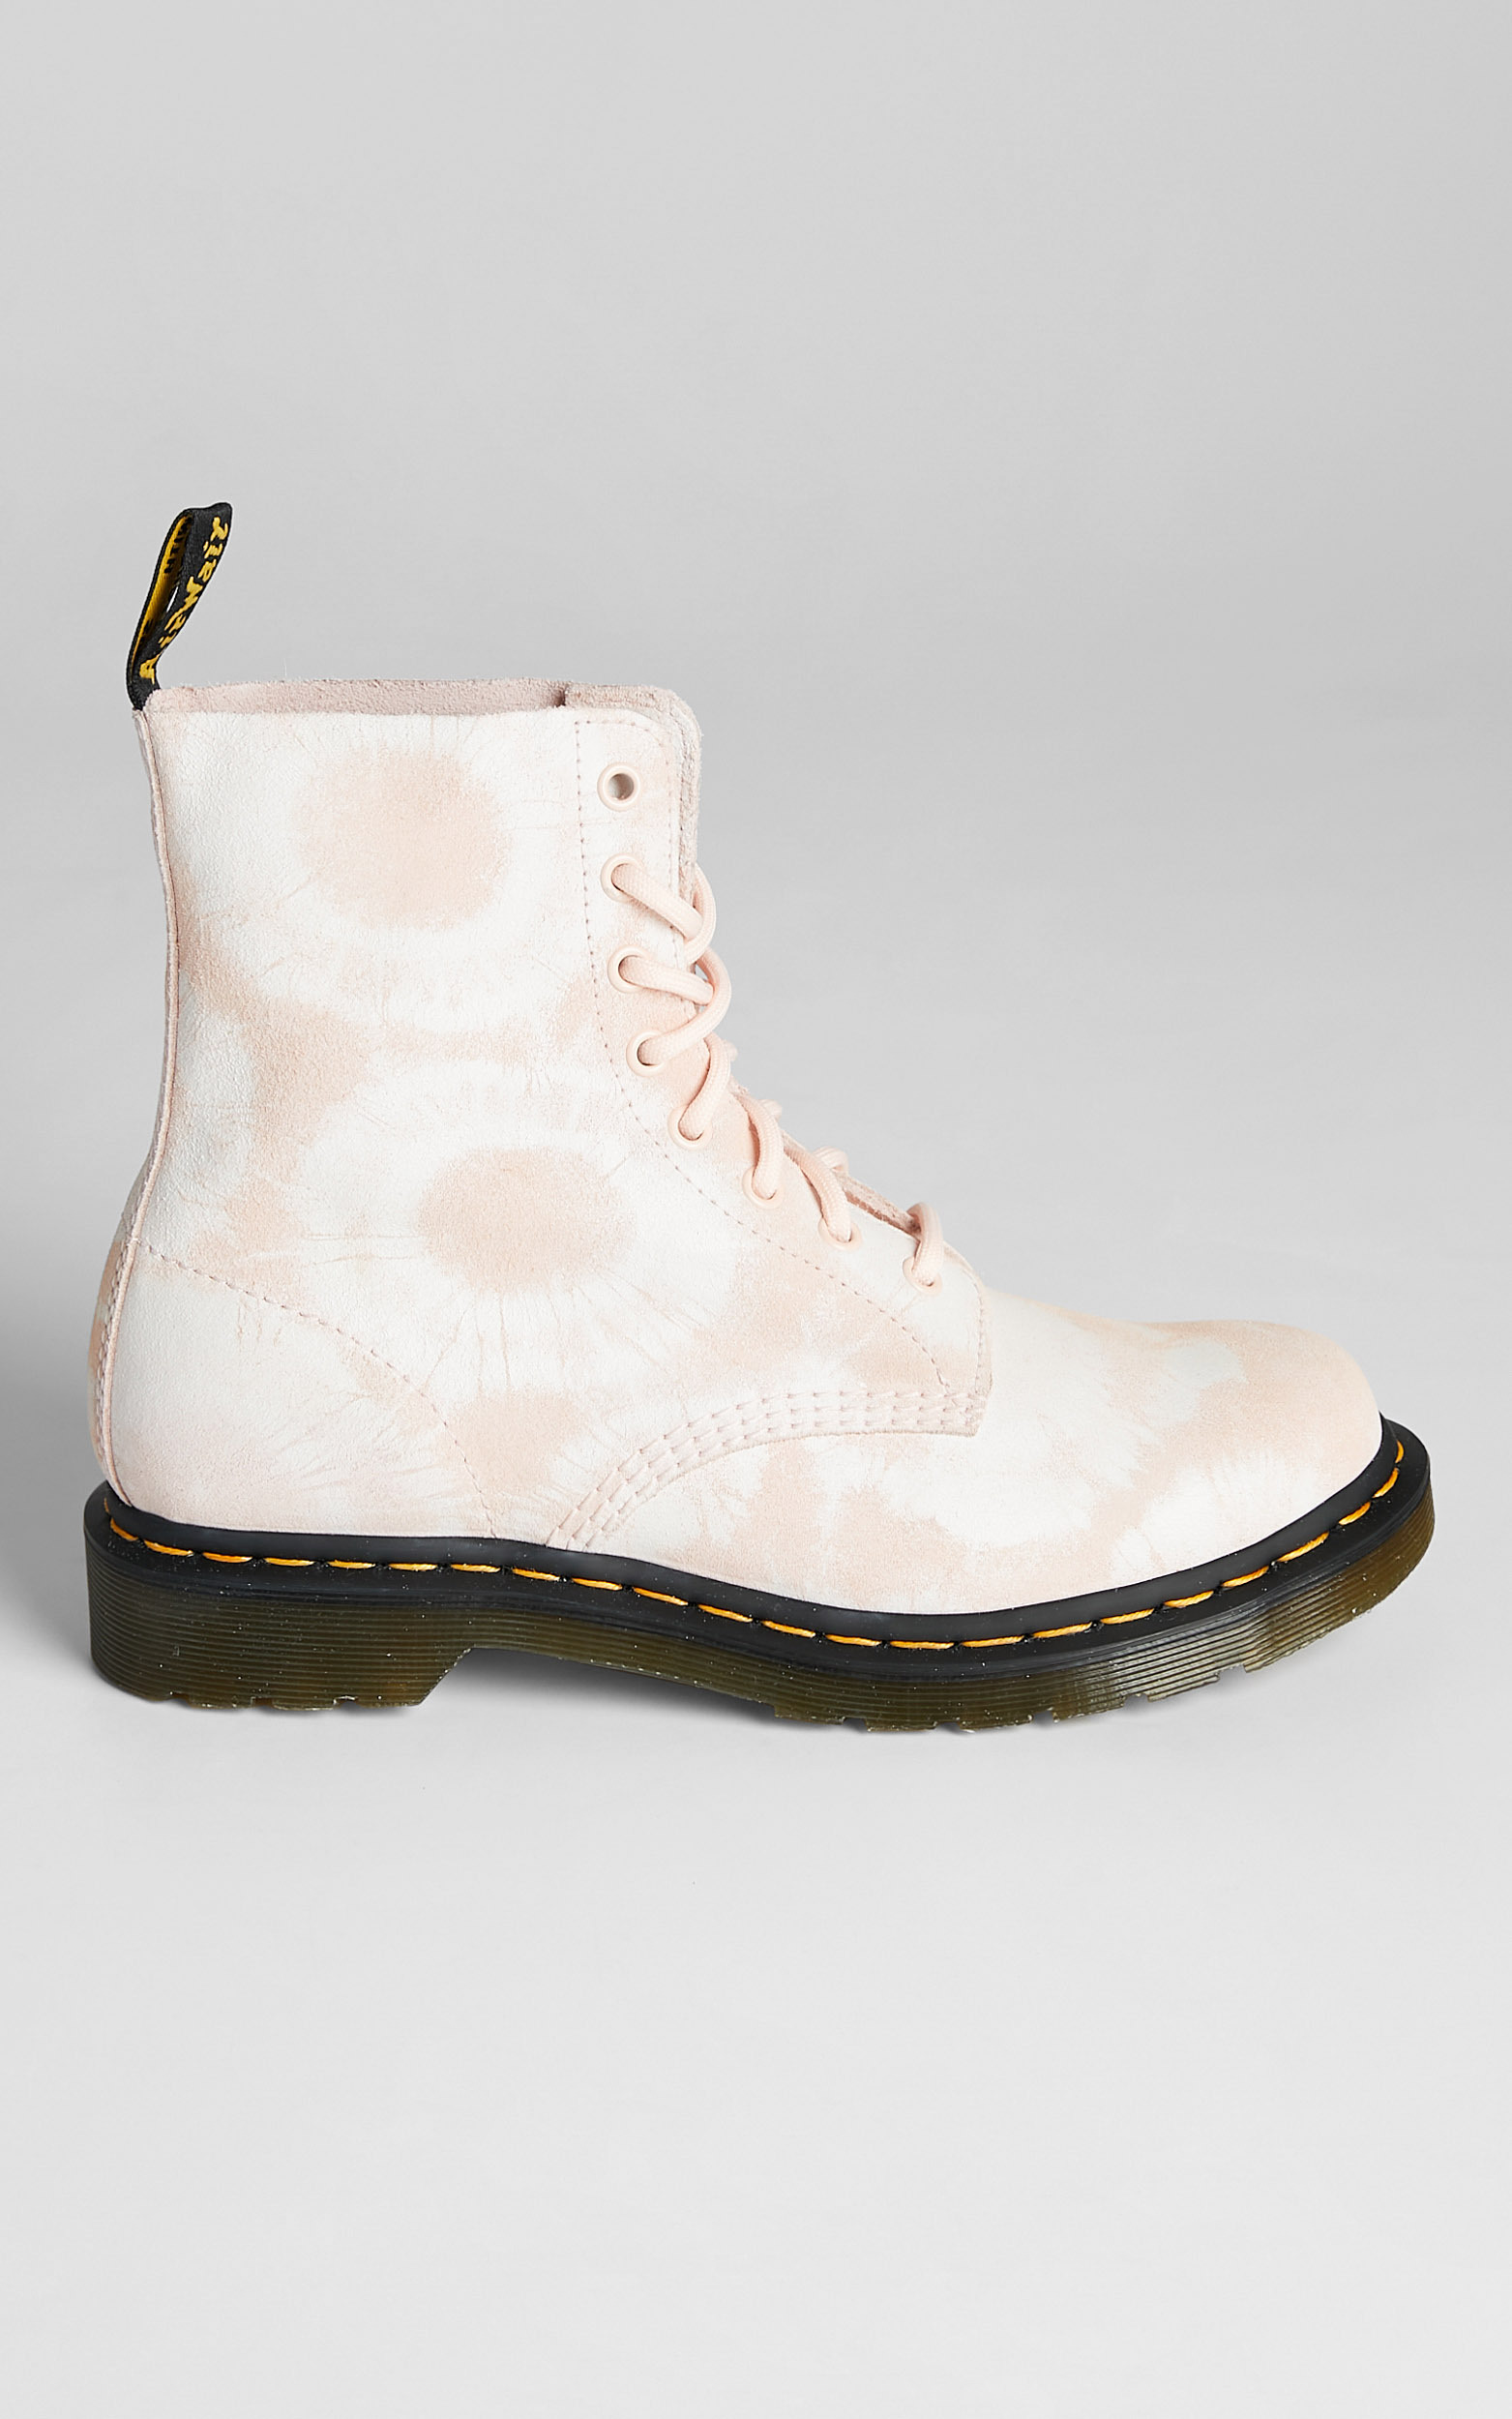 Dr. Martens - 1460 Pascal Tie Dye Boots in Shell Pink White Tie Dye Printed Suede - 05, PNK1, hi-res image number null